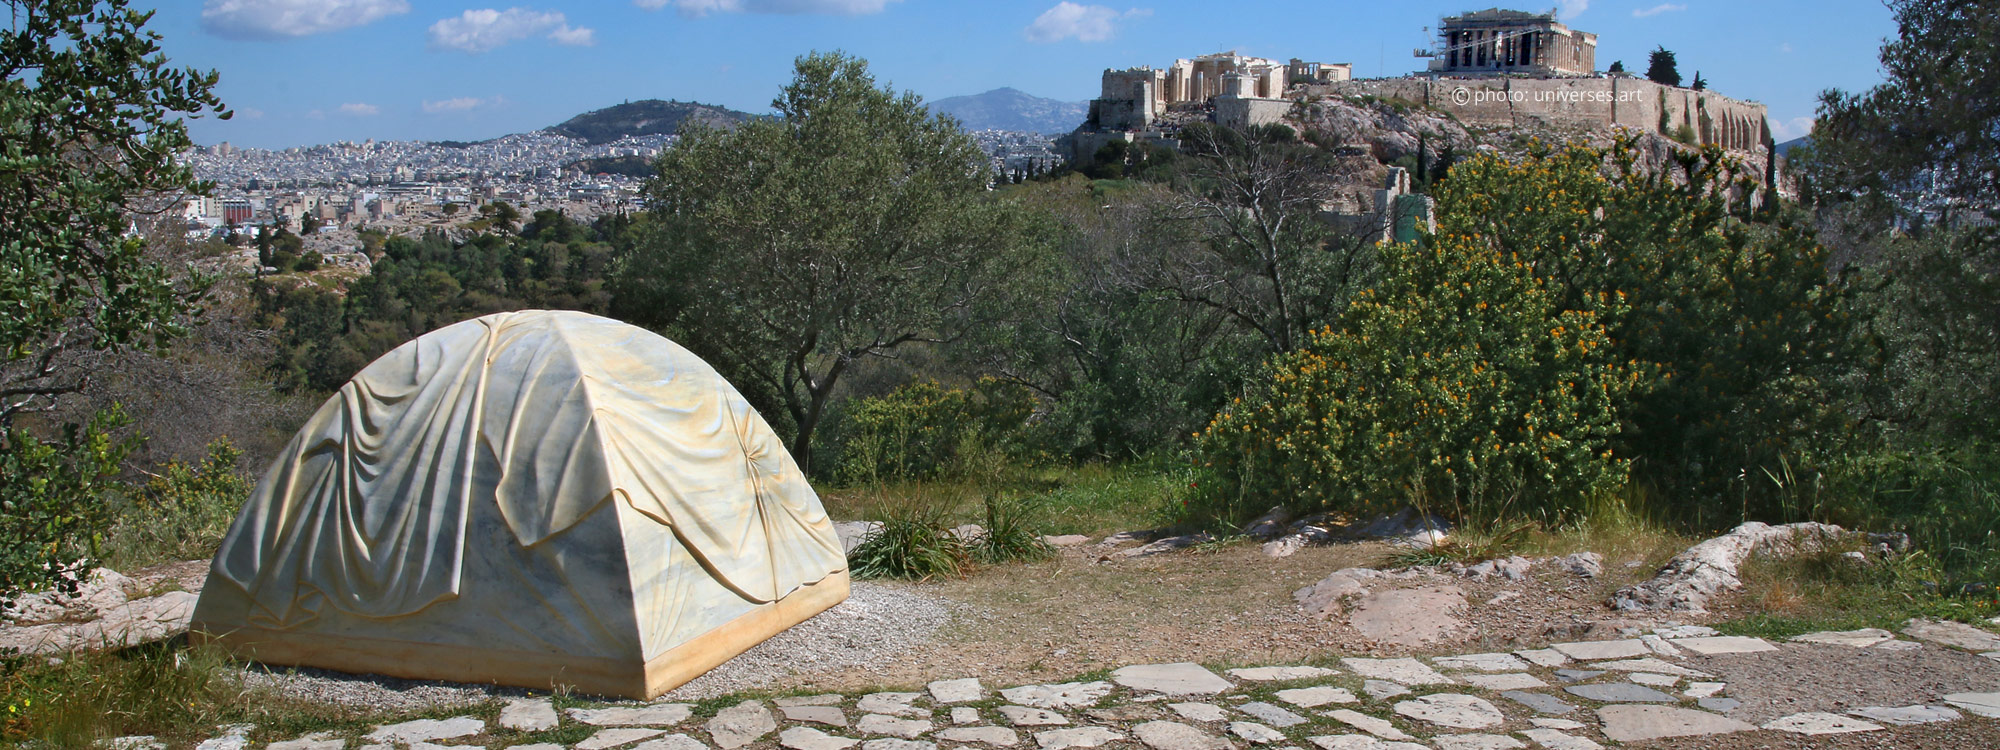 documenta 14 in Athen